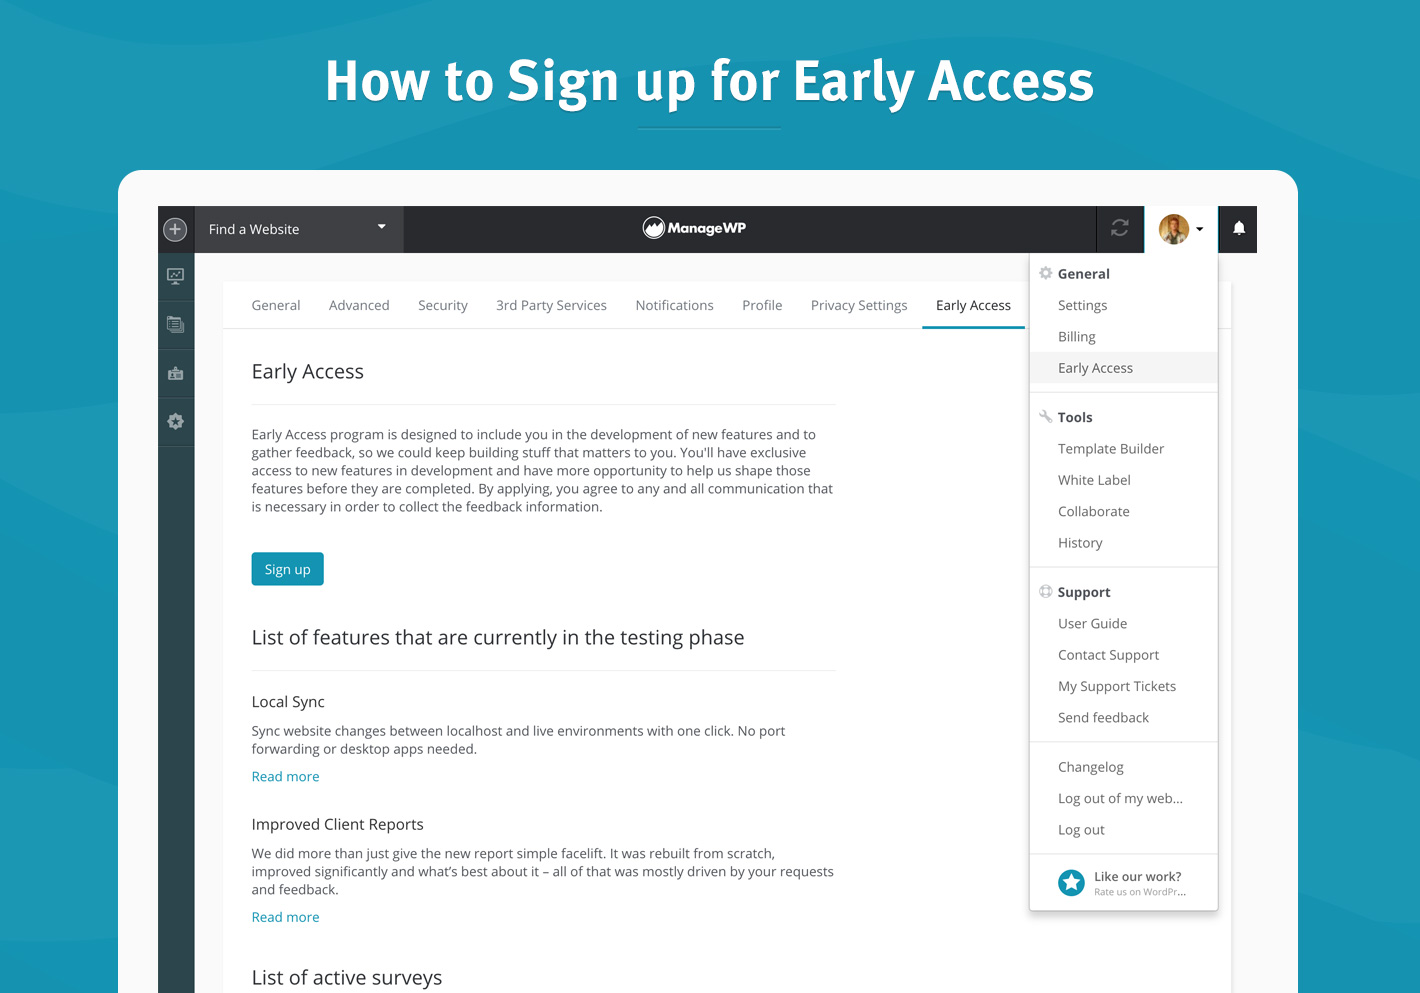 How to Sign up for Early Access